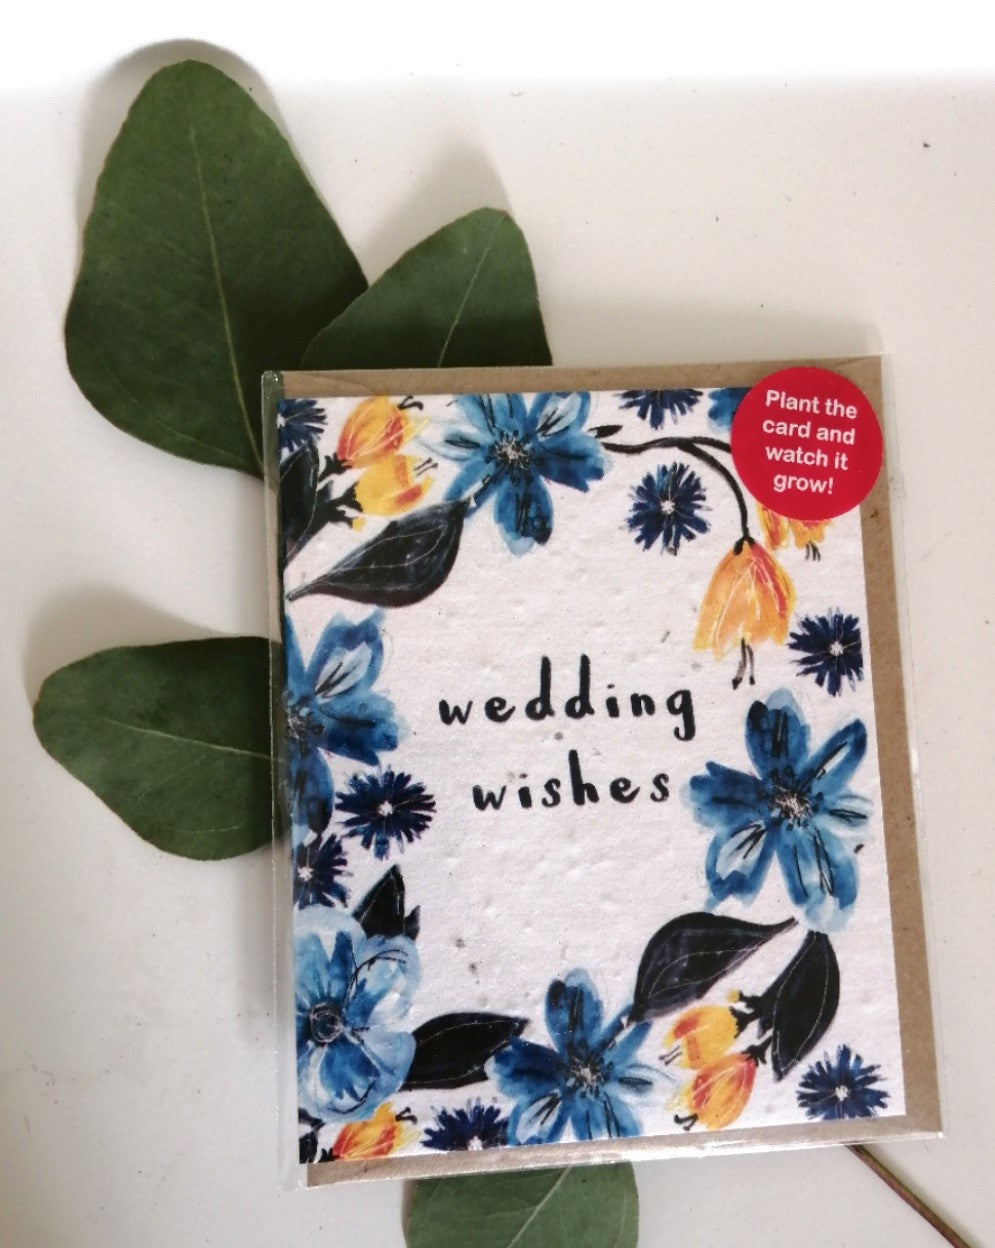 'Wedding wishes' seed card